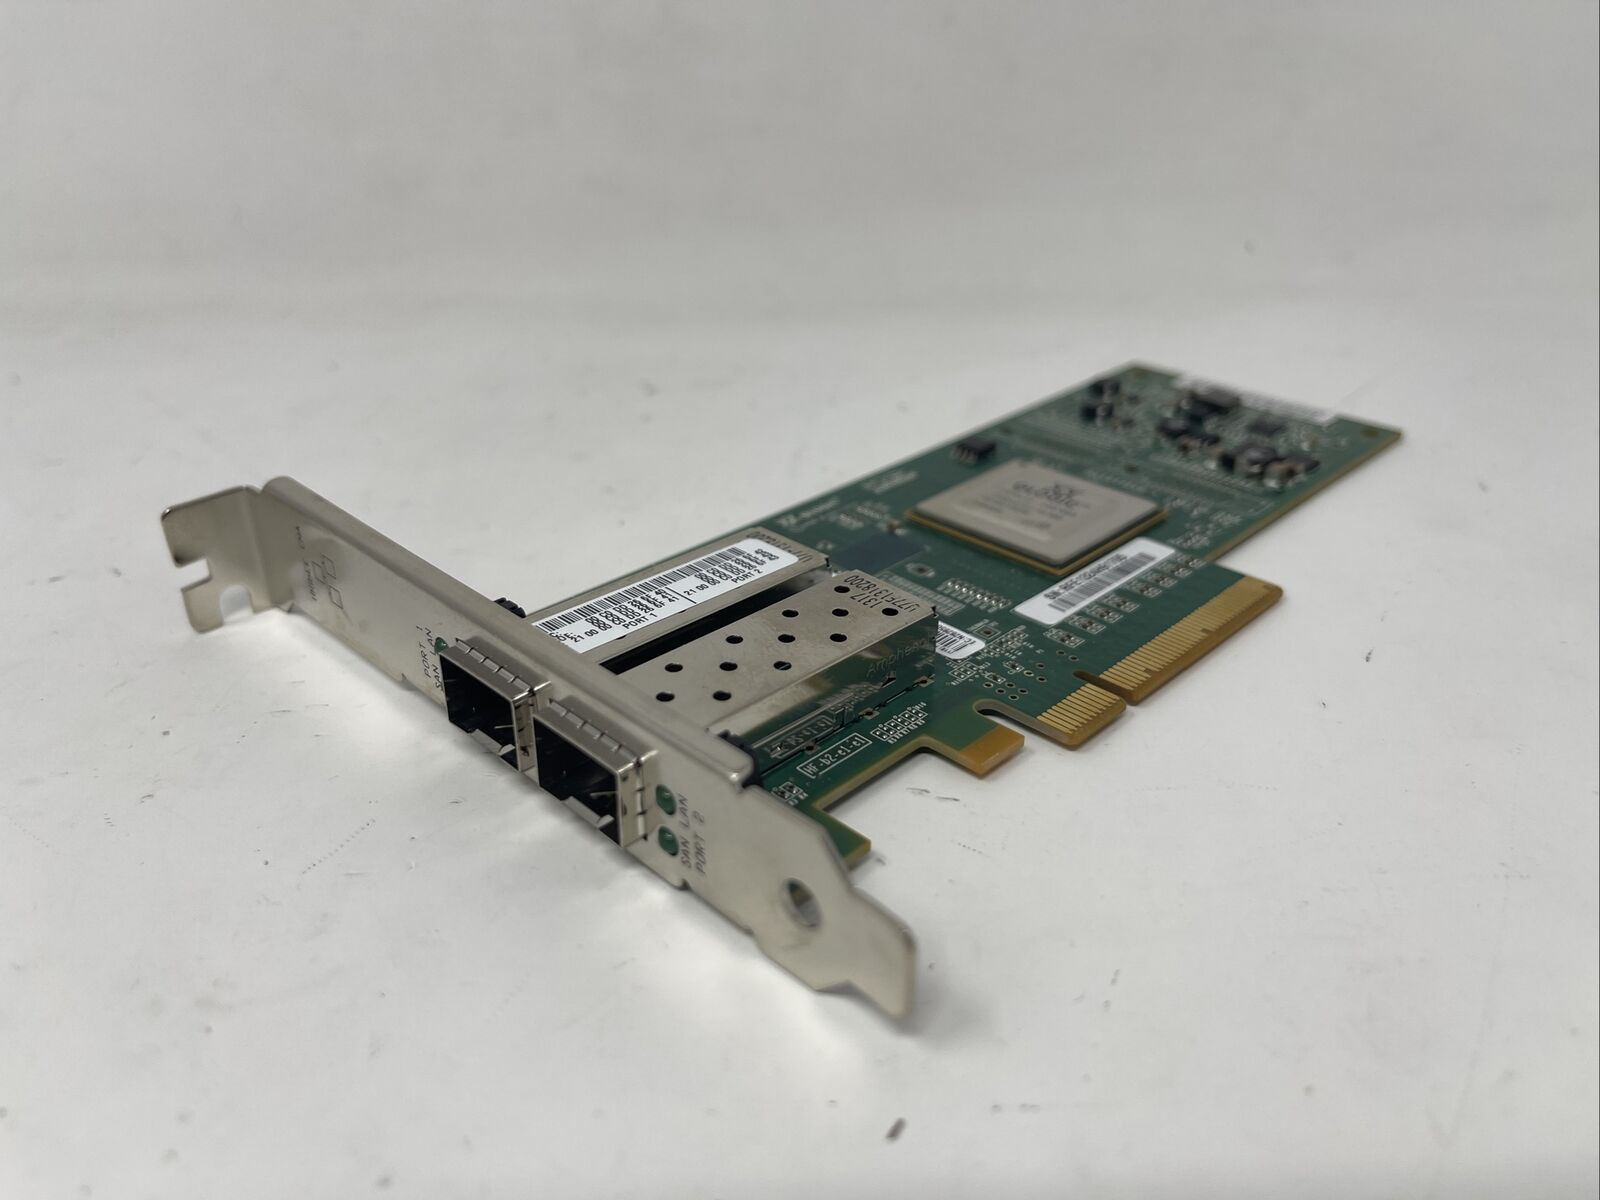 QLogic QLE8142-IBMX Dual Port 10Gbps Enhanced Ethernet to PCIe Network Adapter